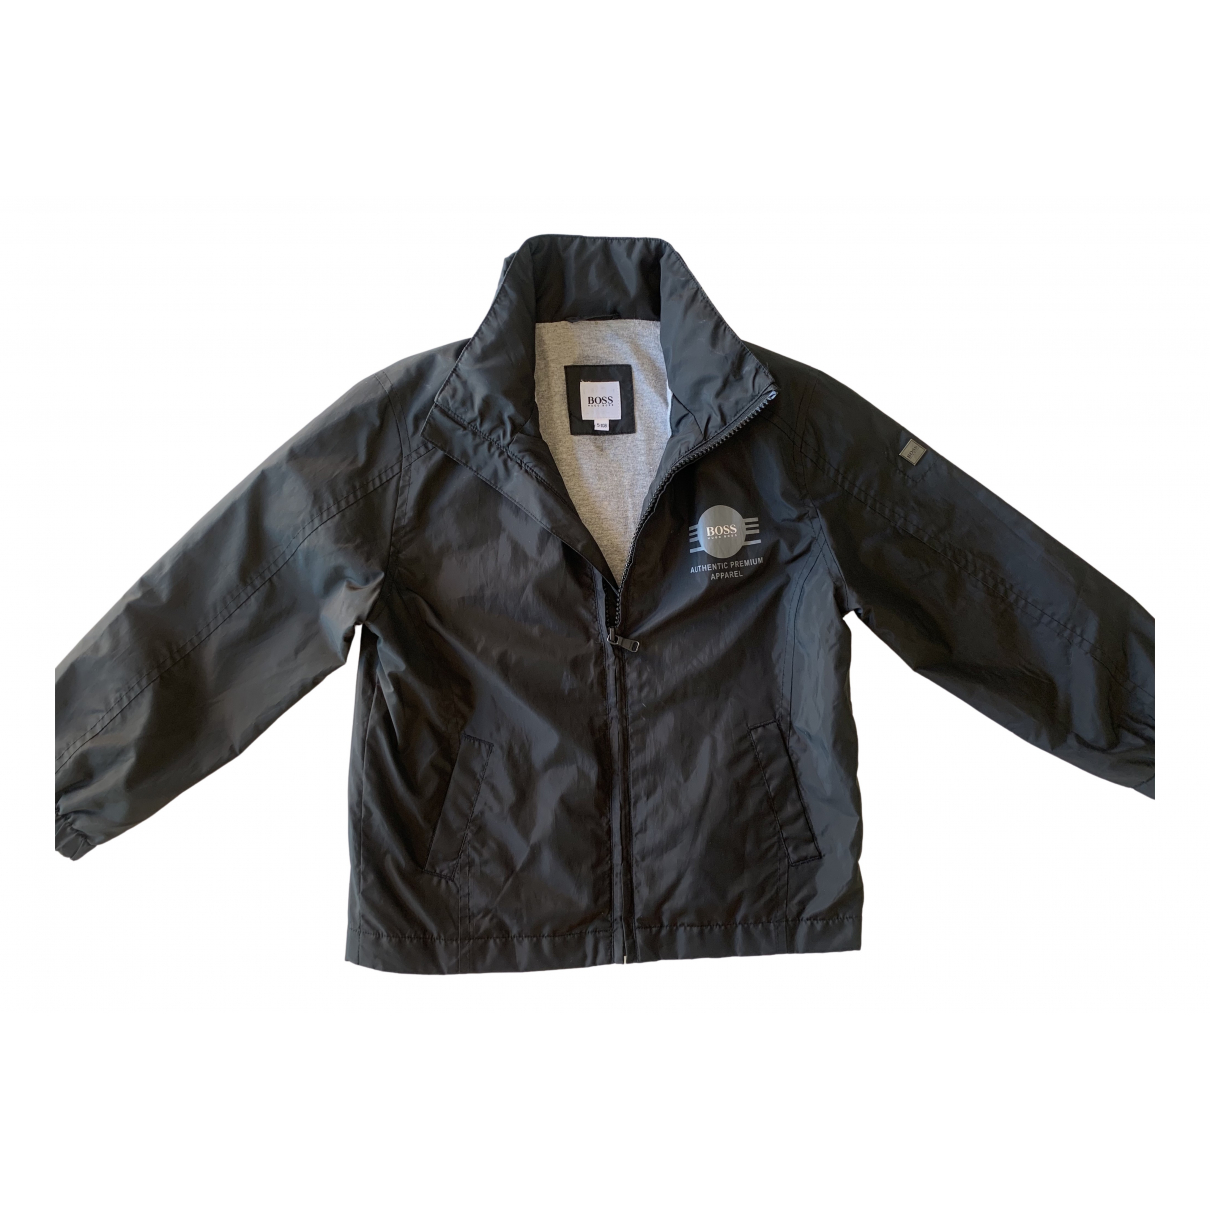 Boss N Black jacket & coat for Kids 5 years - up to 108cm FR